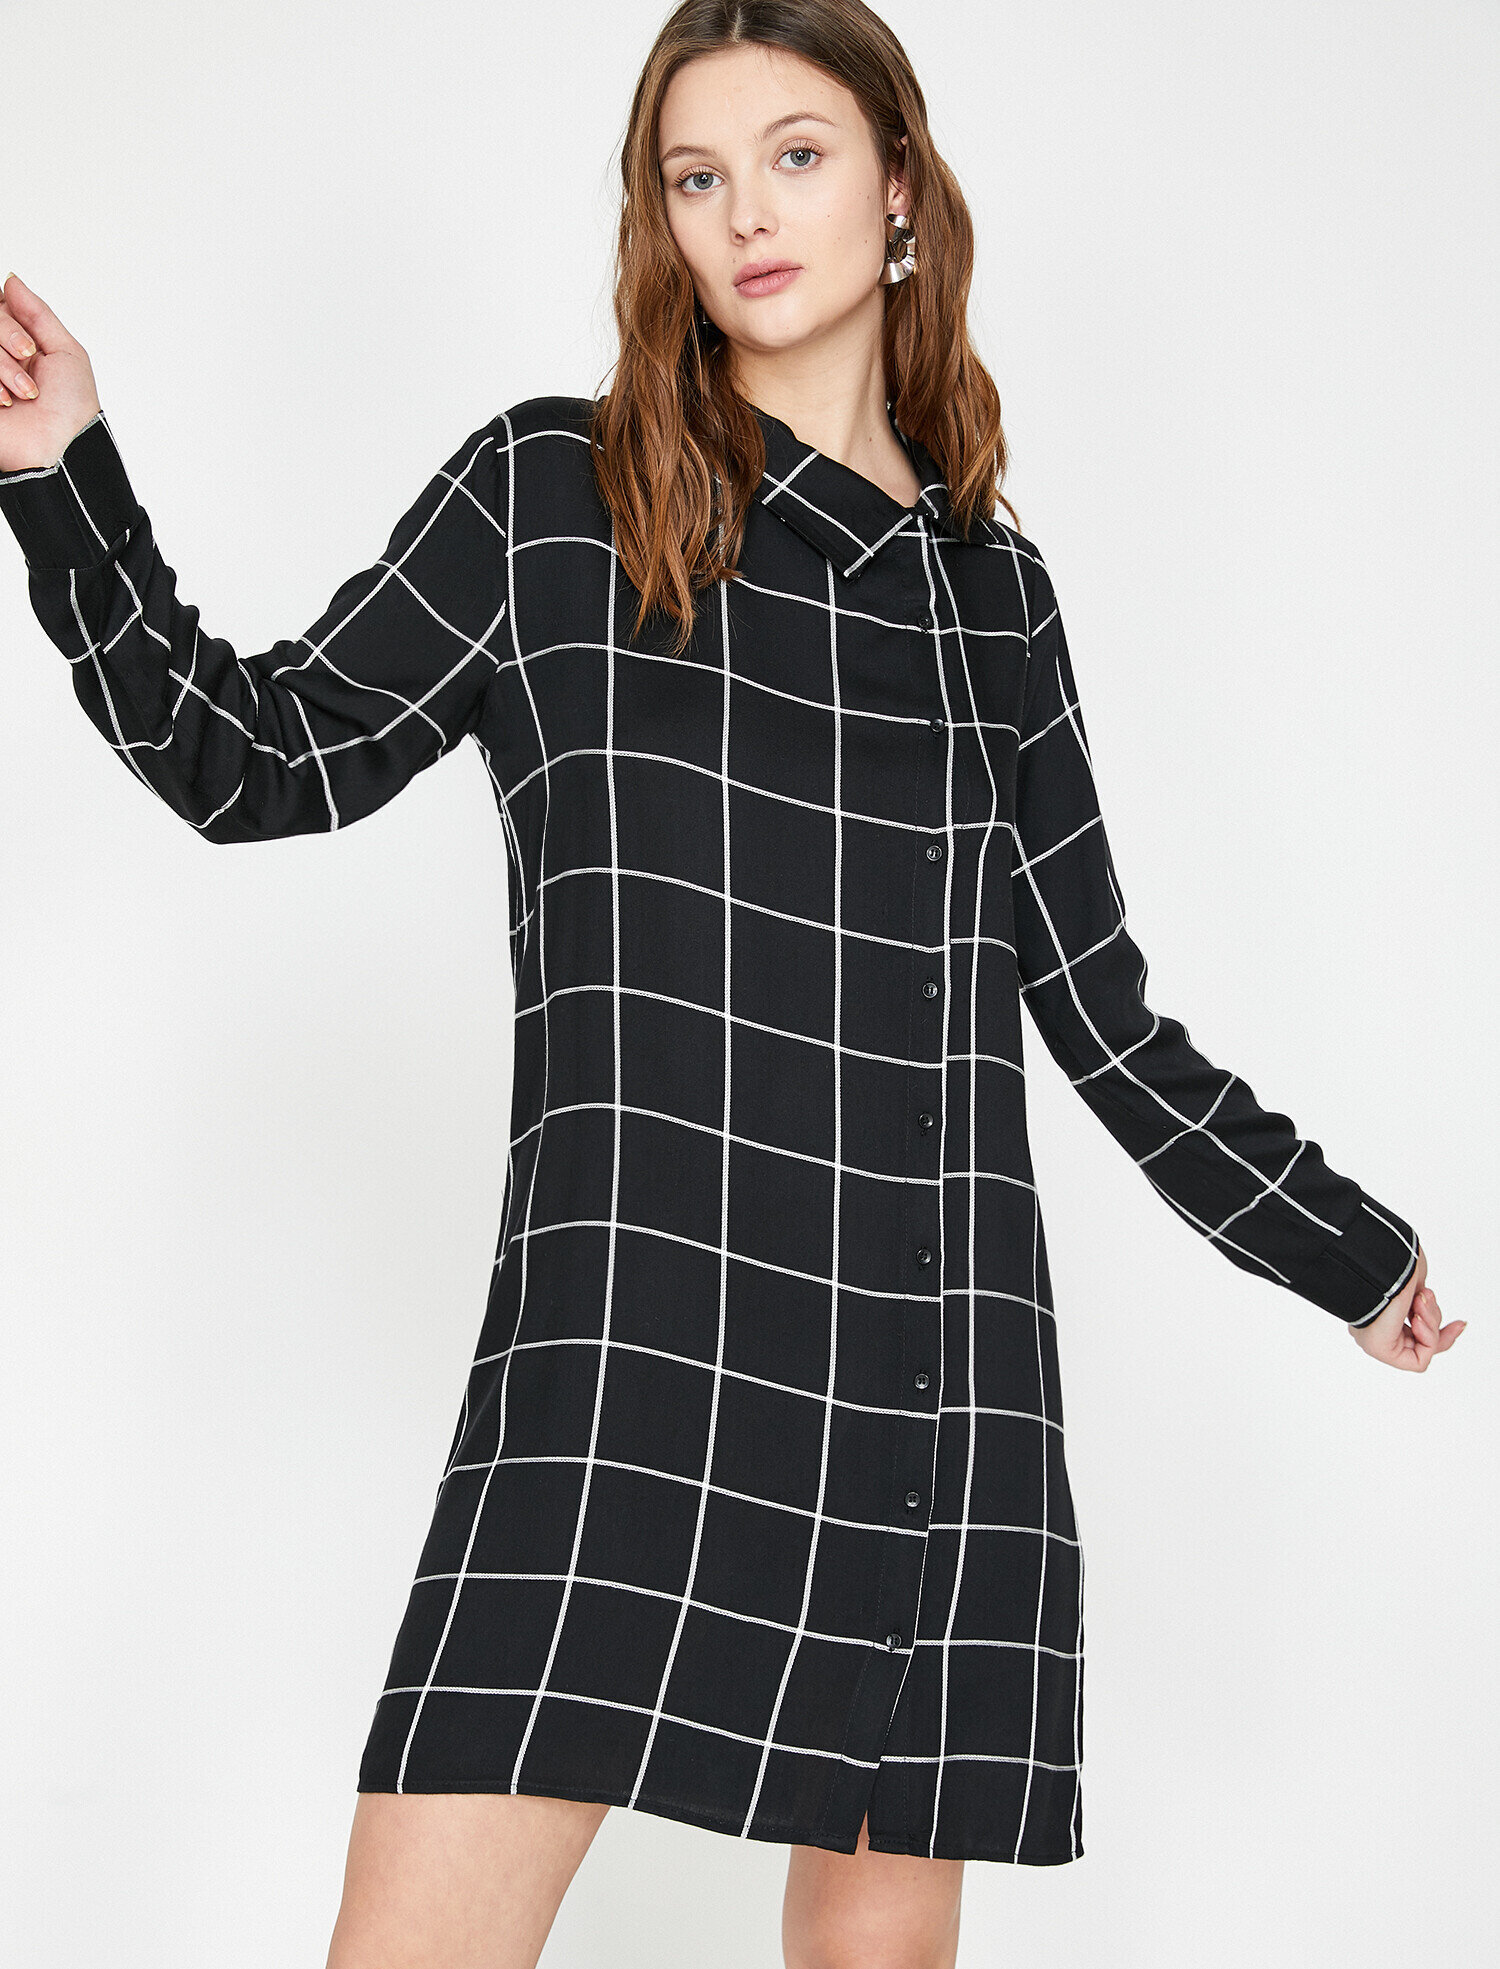 c76fe3e0064f Black Check Women Check Dress 9KAK83529EW21P